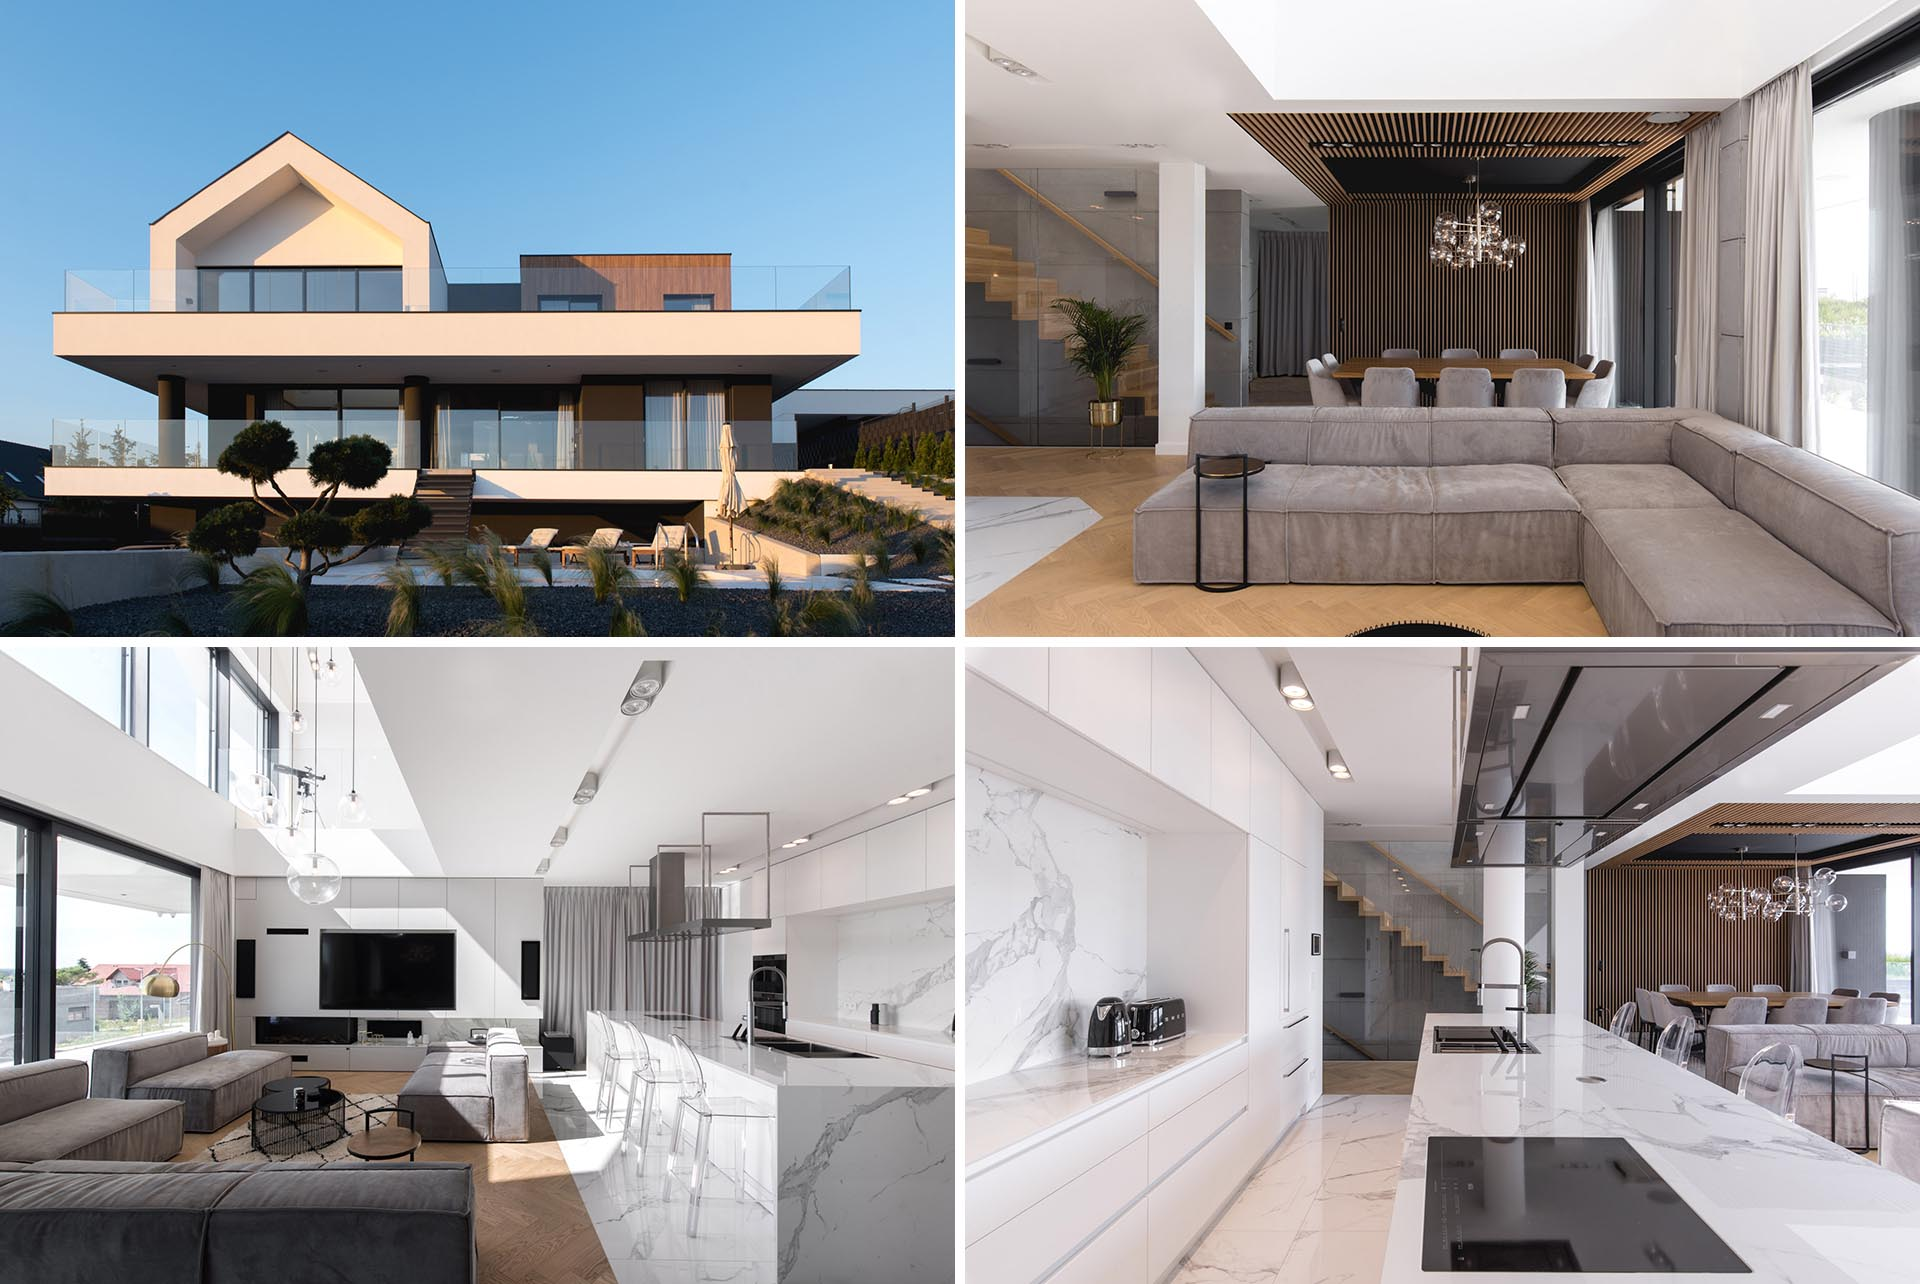 A modern house with a black and white exterior with wood accents, and a modern interior.